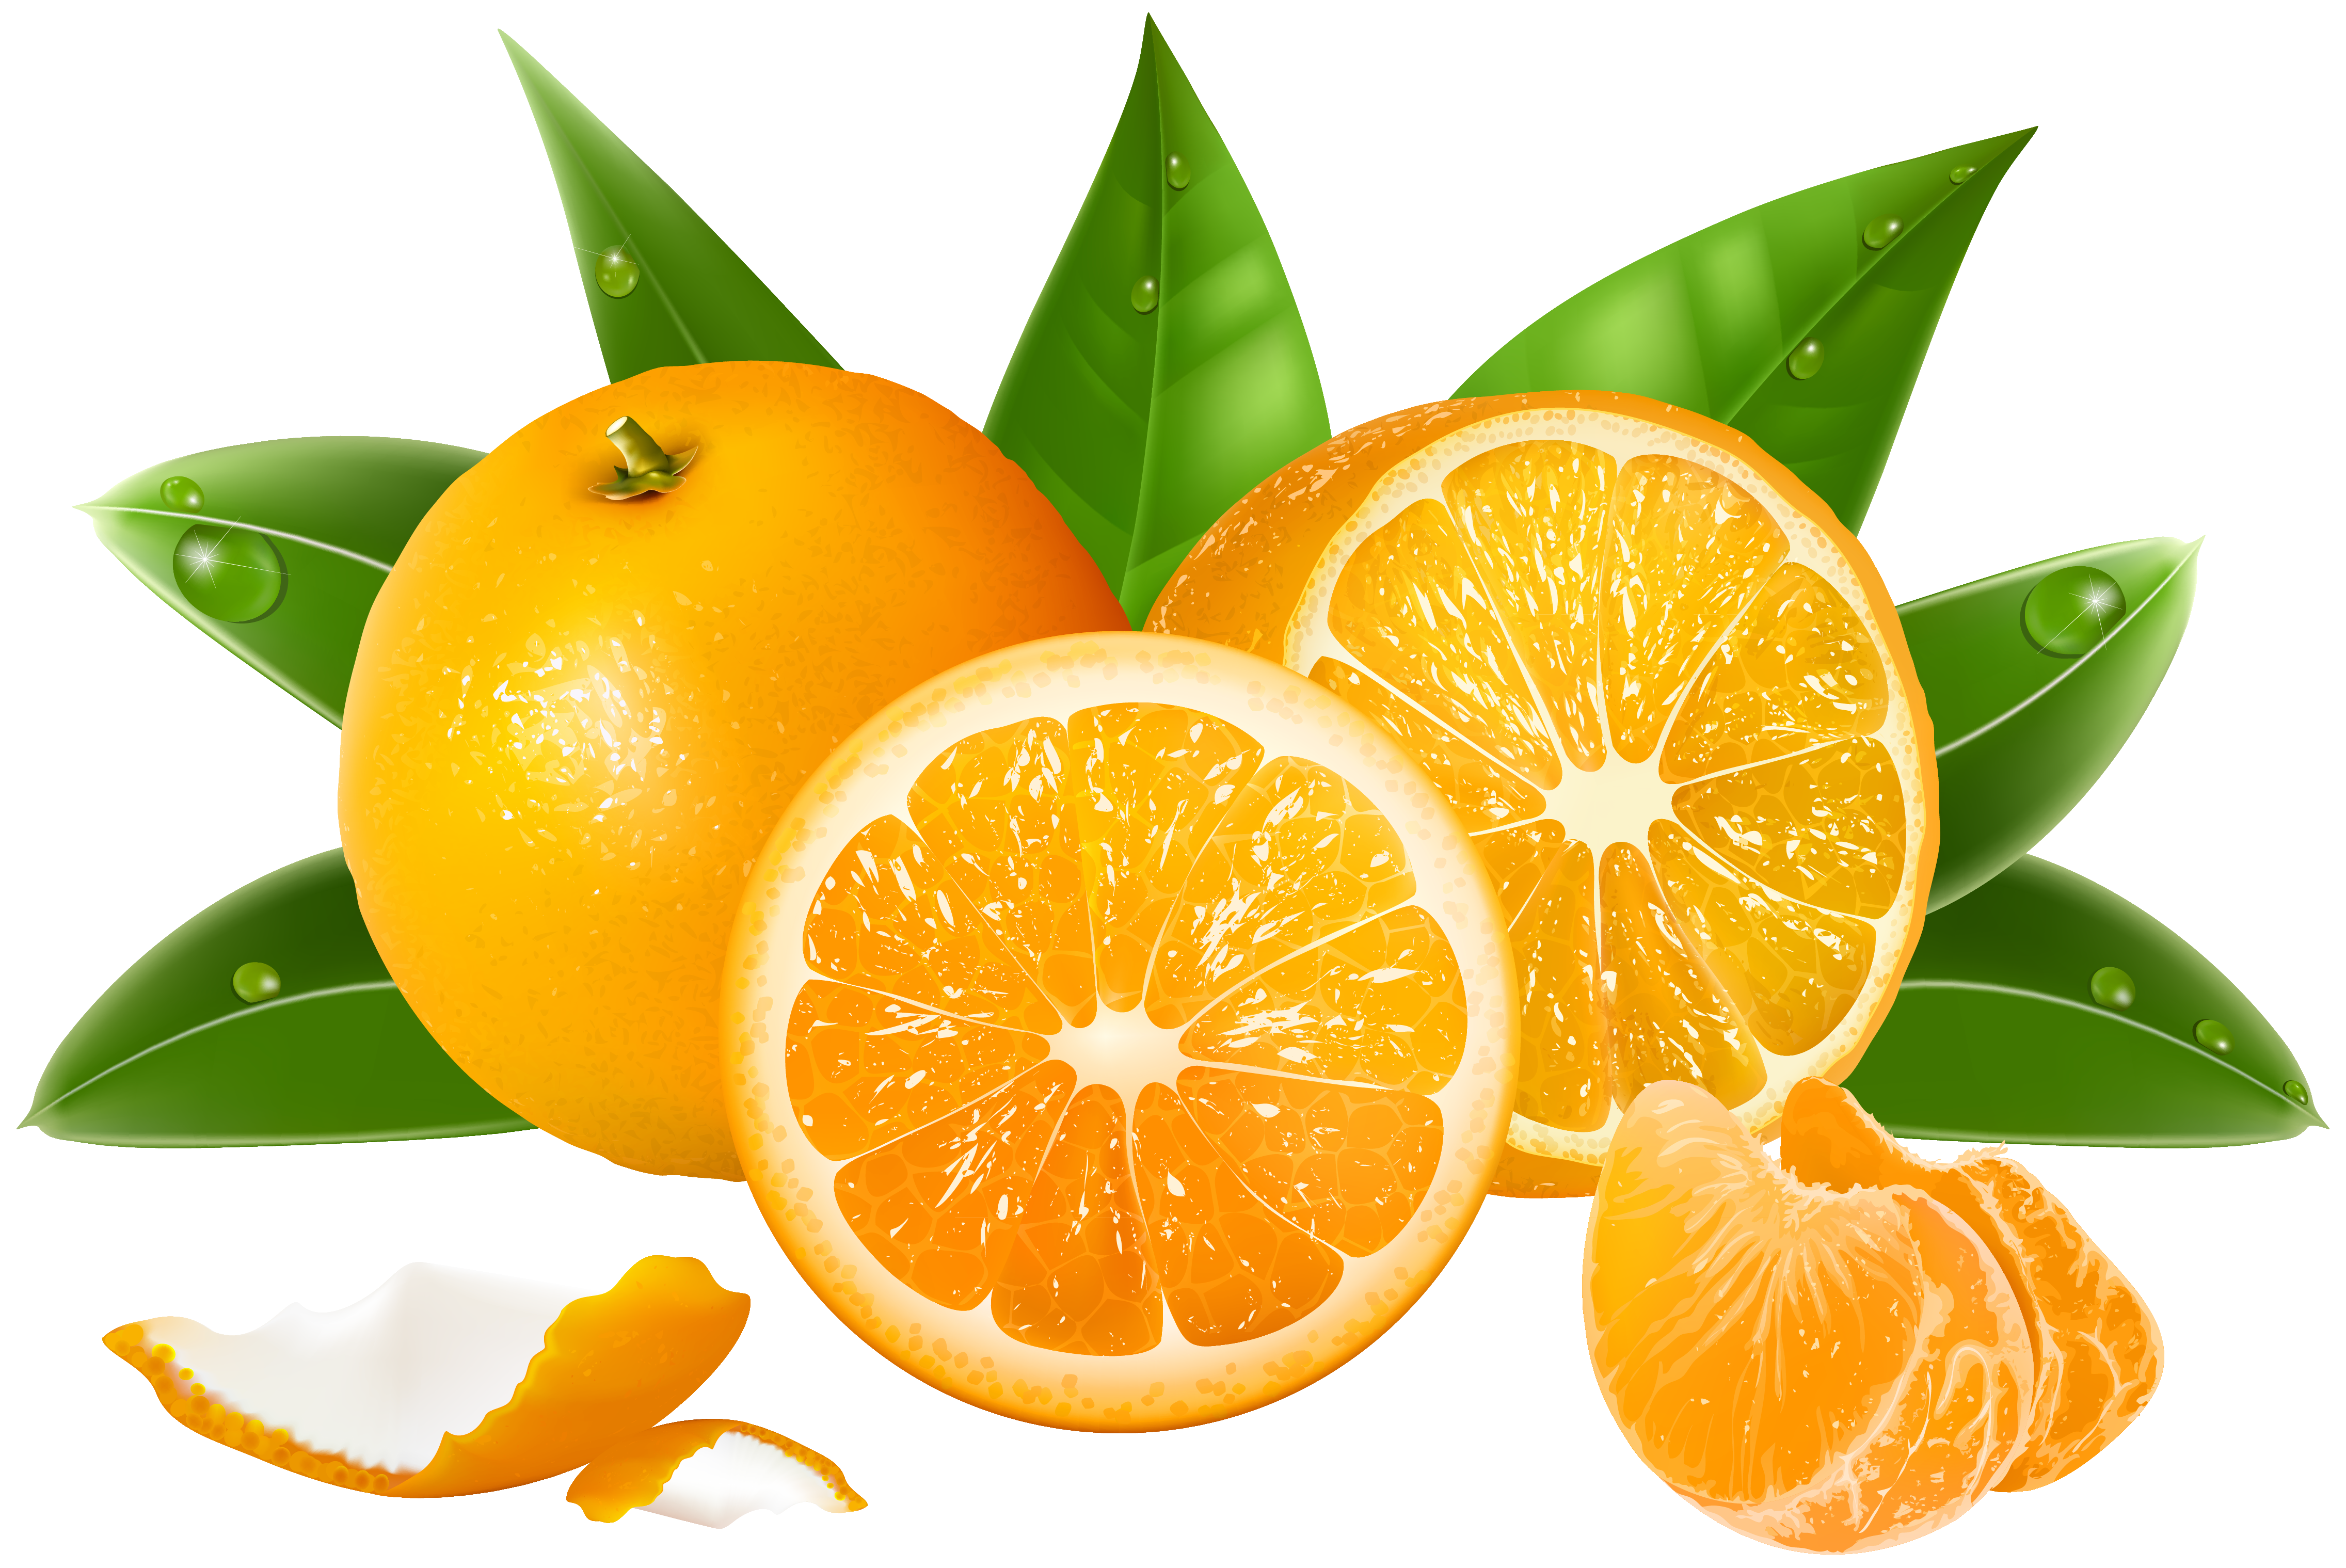 Oranges Png Clipart Image Gallery Yopriceville High Quality Images And Transparent Png Free Clipart Fruit Orange Fruit Clip Art